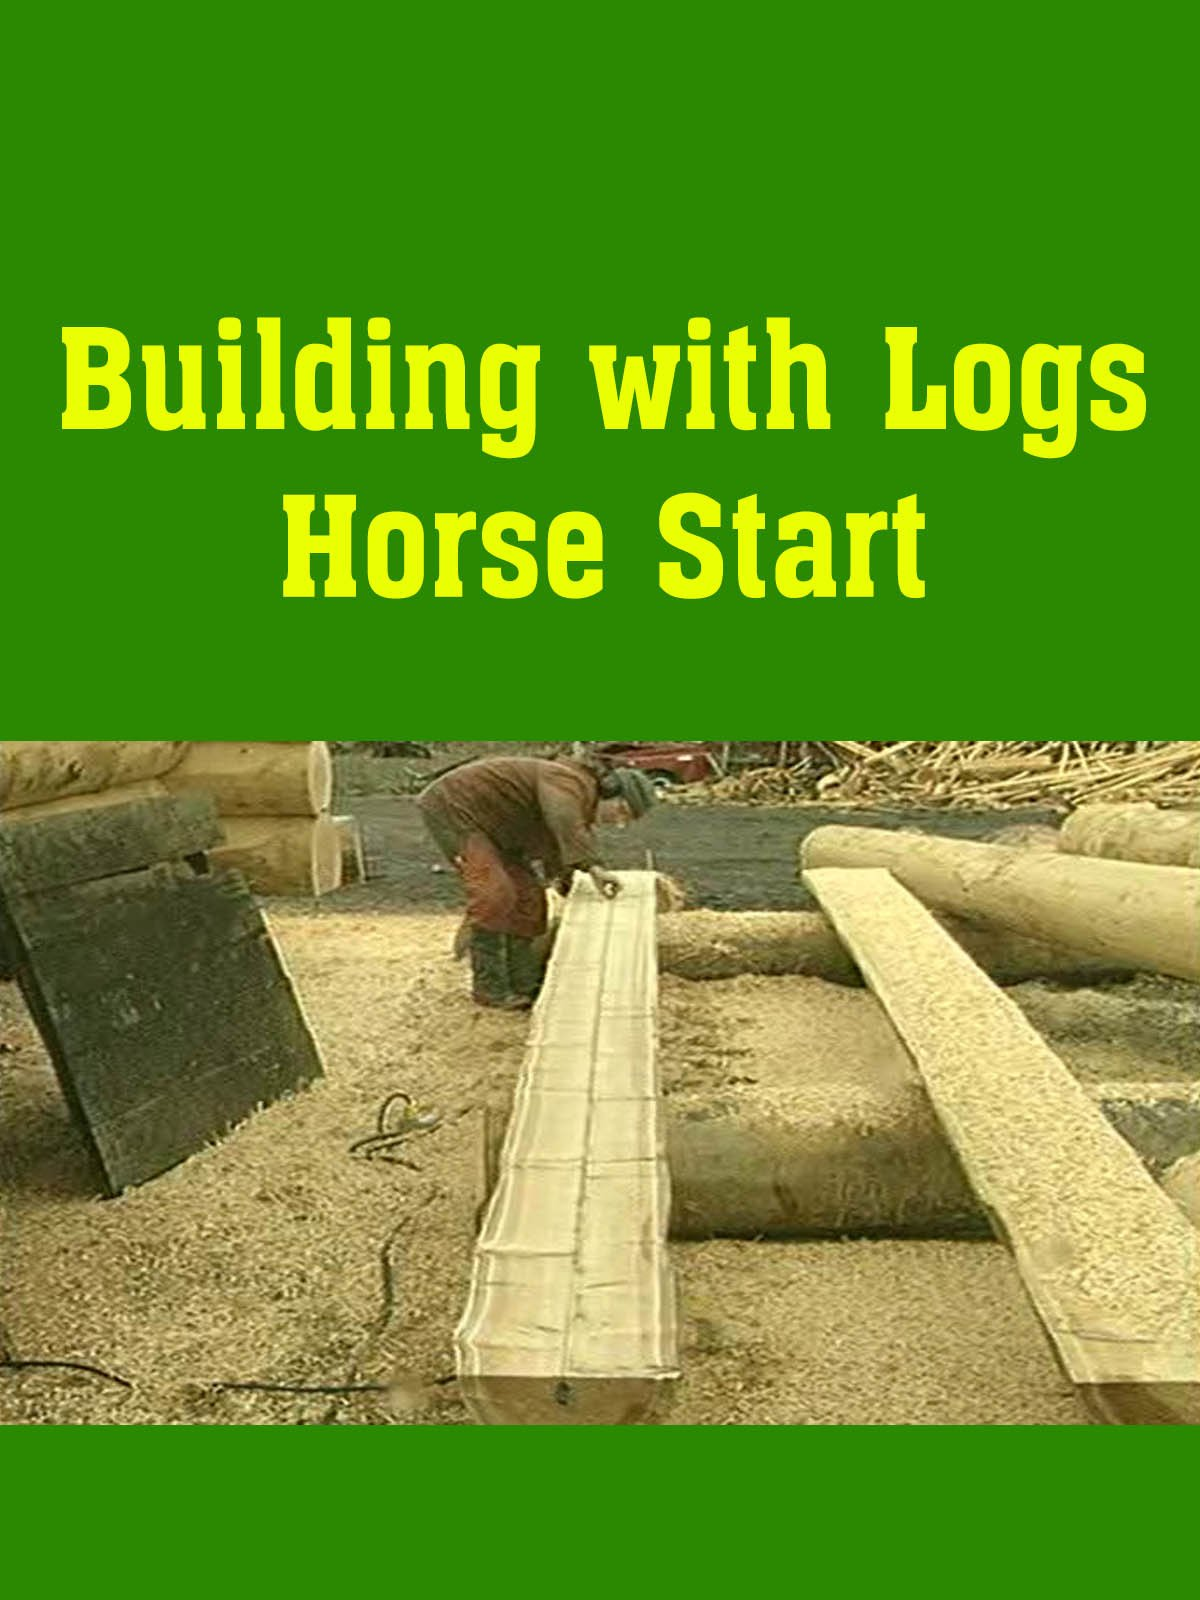 Building with Logs Horse Start